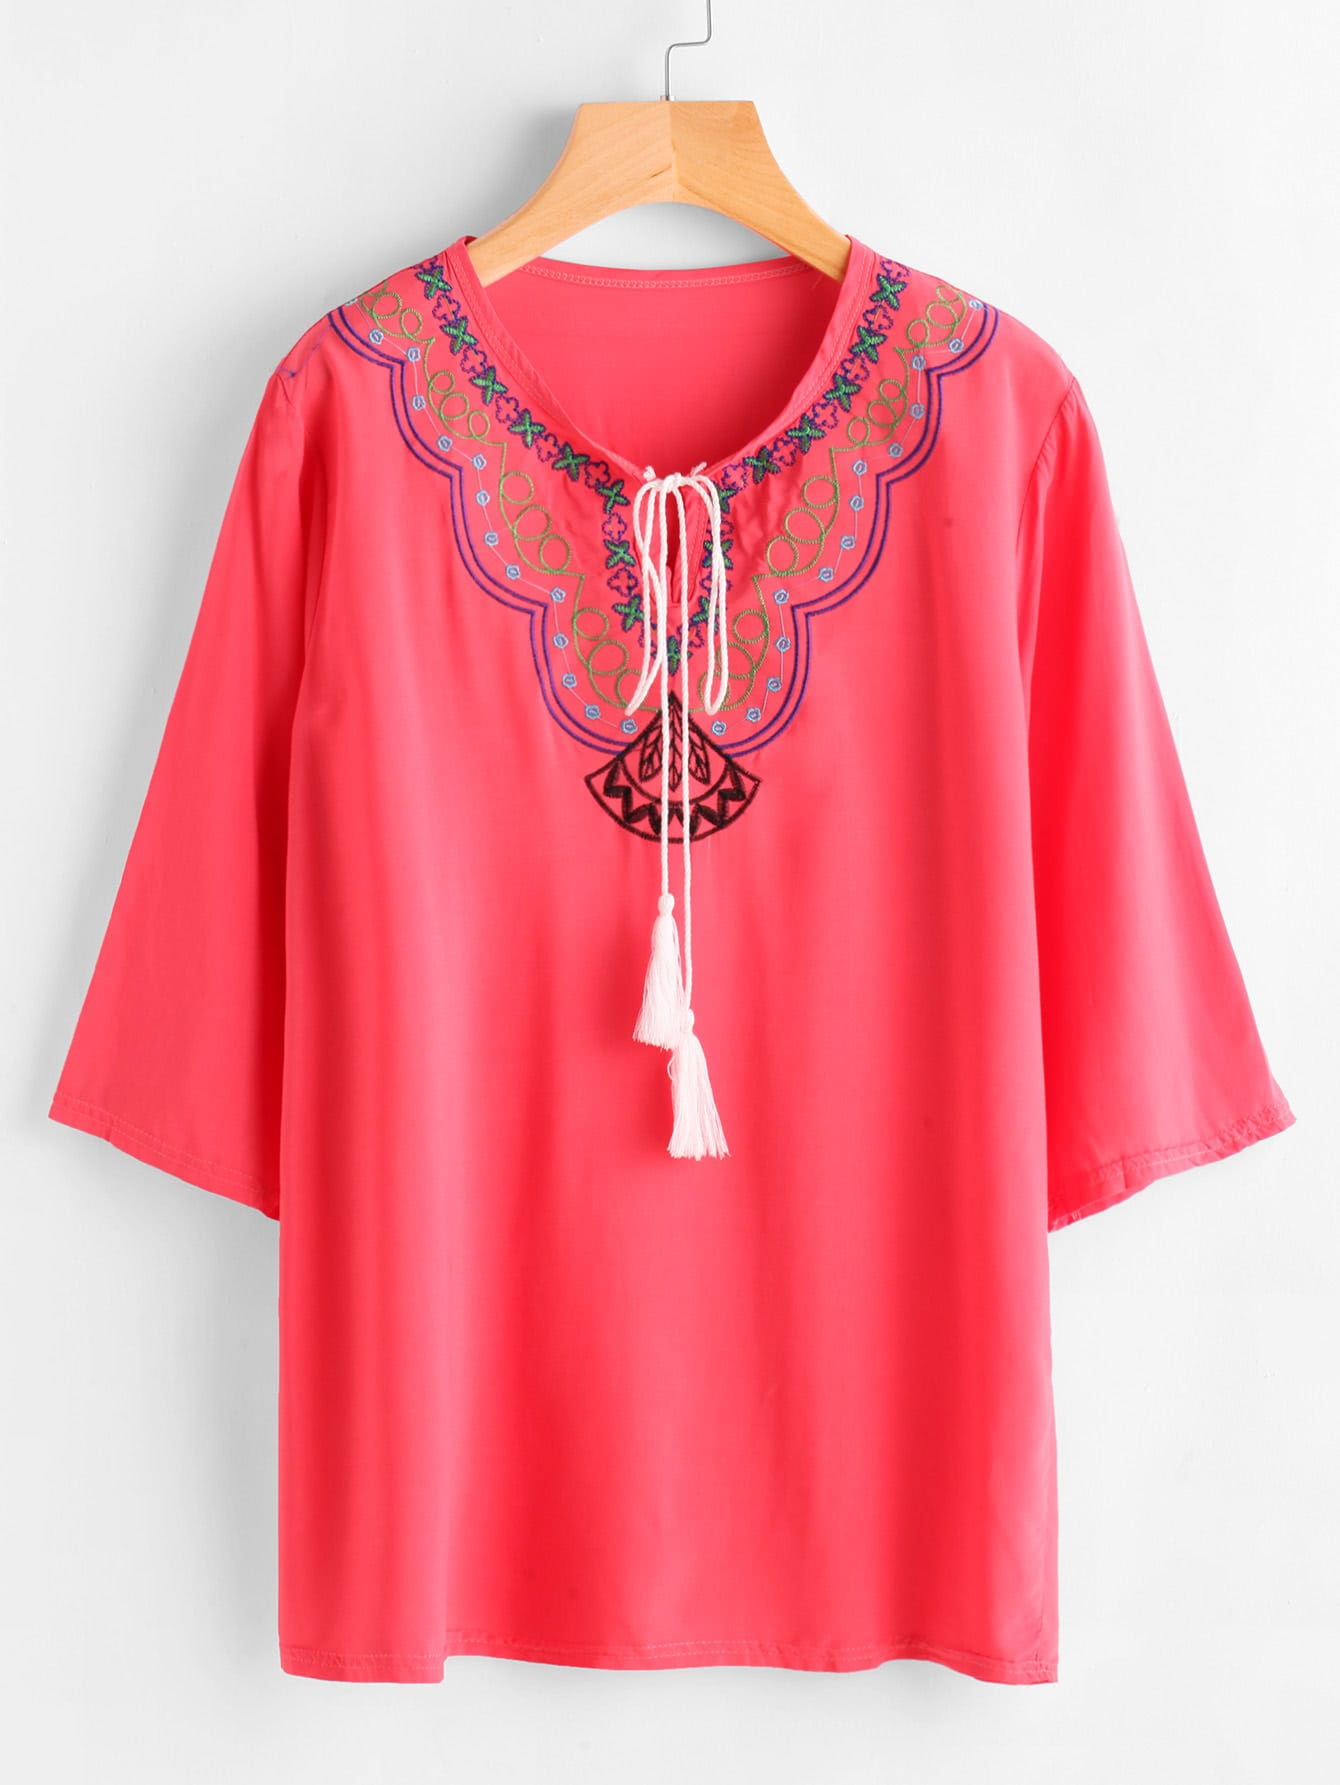 Tassel Tie Neck Embroidery Blouse blouse170712104